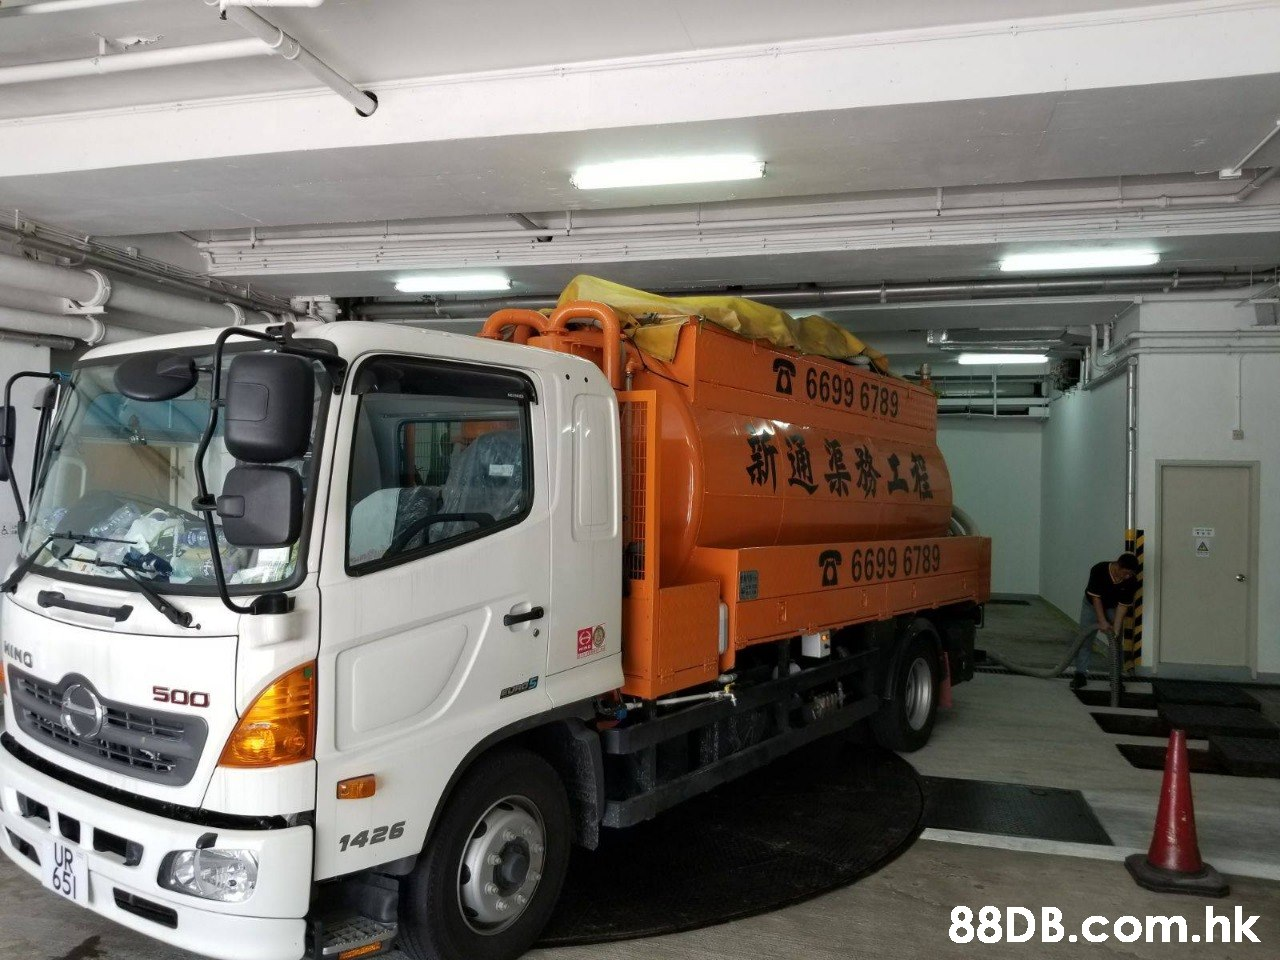 6699 6789 斯通渠務工程 6699 6789 SOO 1426 .hk  Land vehicle,Vehicle,Transport,Truck,Commercial vehicle